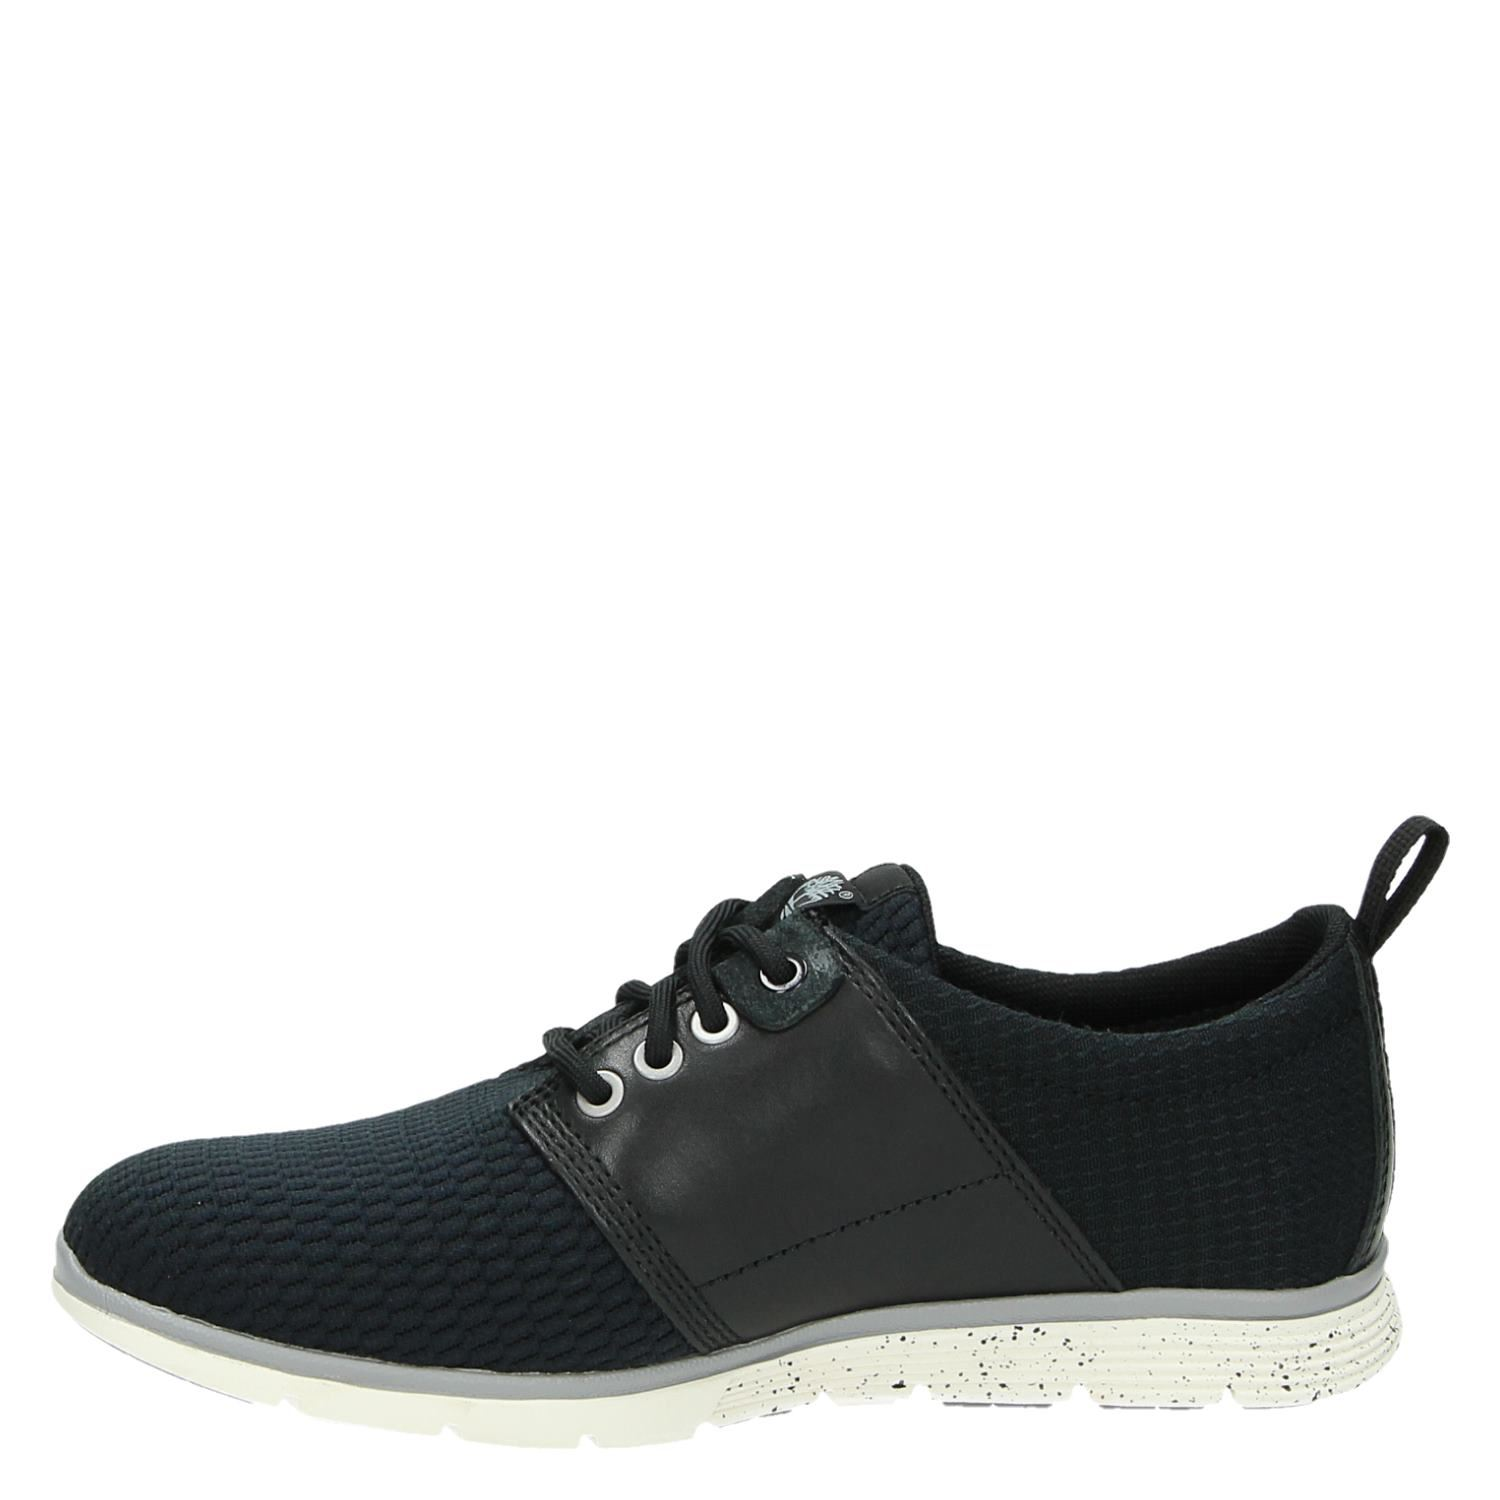 Timberland dames lage sneakers